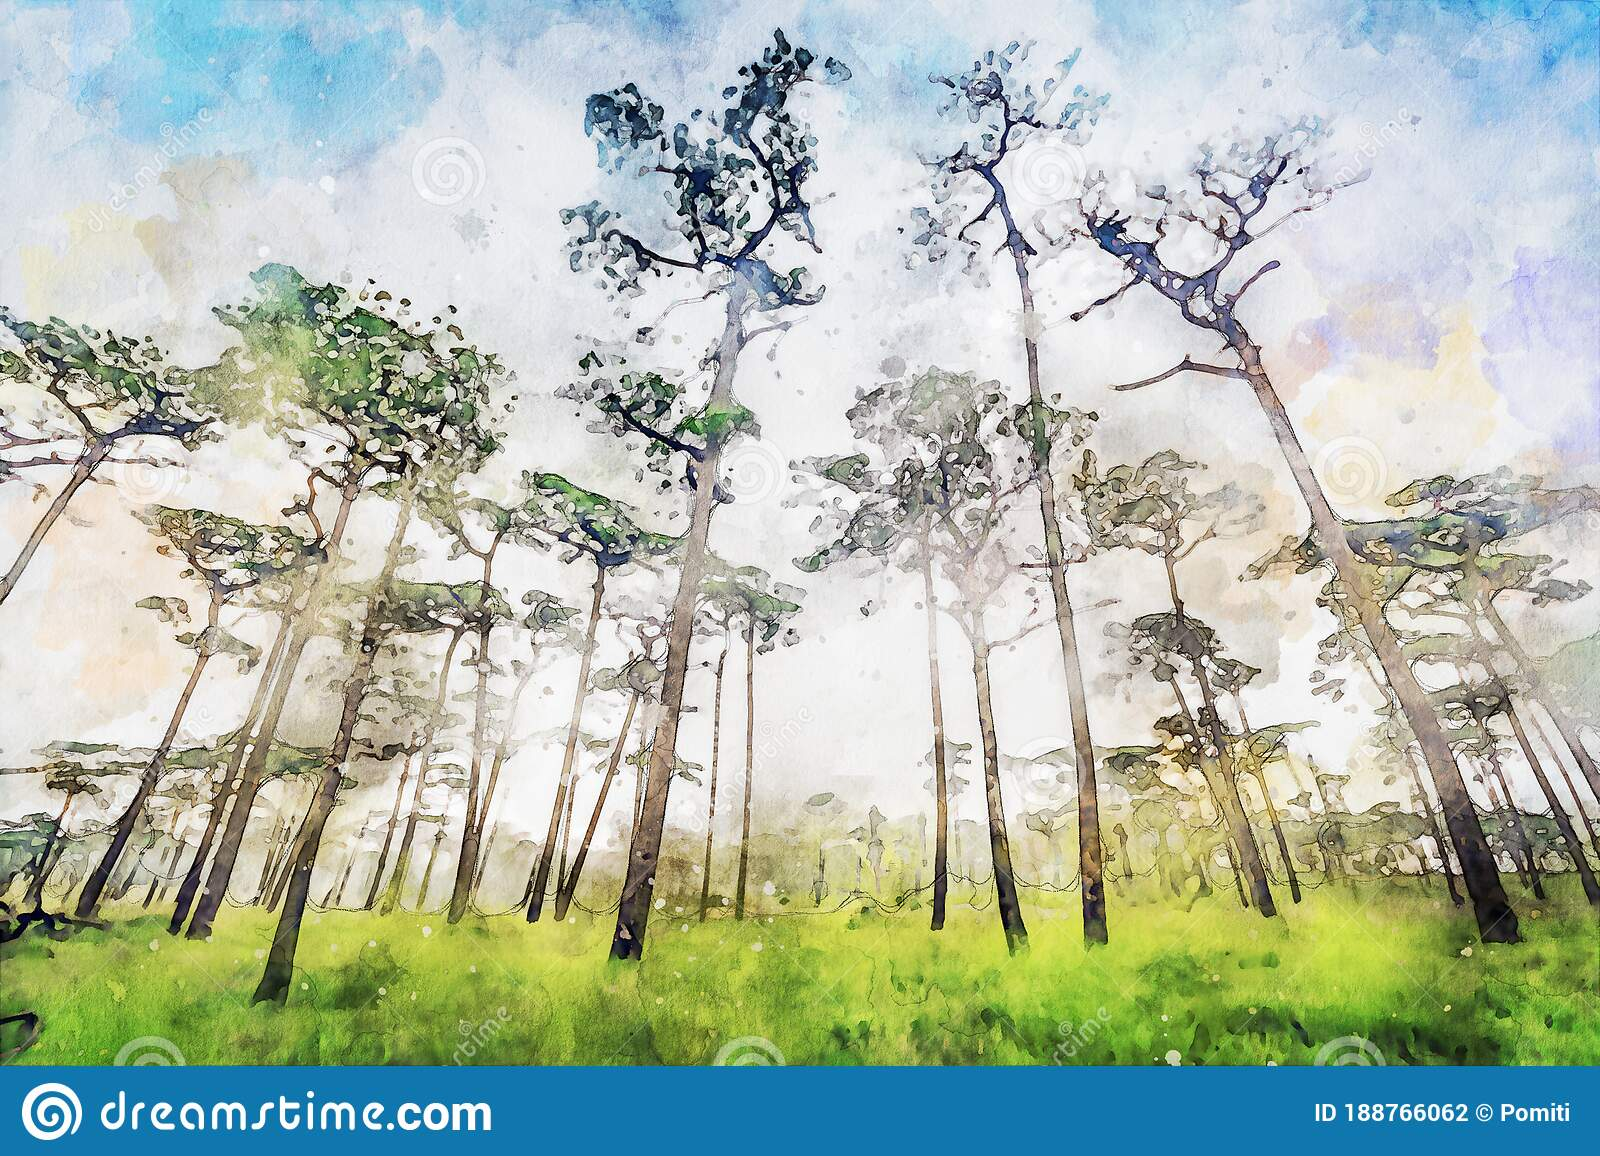 Abstract Painting Of Pine Trees In Forest Nature Landscape Image Digital Watercolor Illustration Art For Background Stock Illustration Illustration Of Wall Texture 188766062